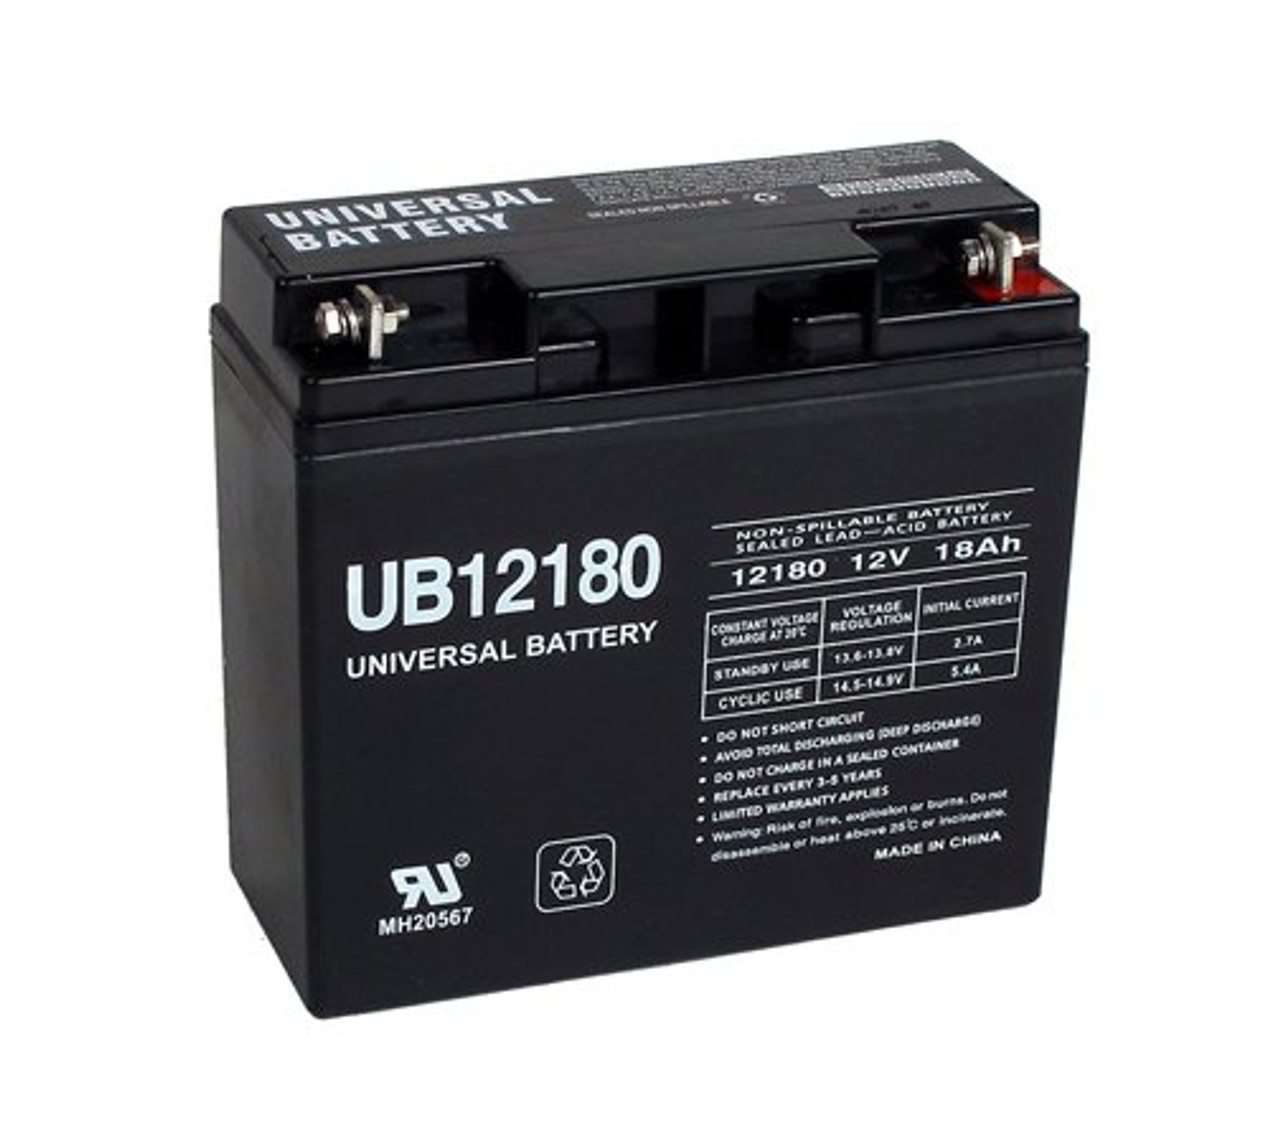 12 Volt 18 Amp Hour Upgrade Battery For Modified Power Wheels New W Warranty Batteryspecialist Ca